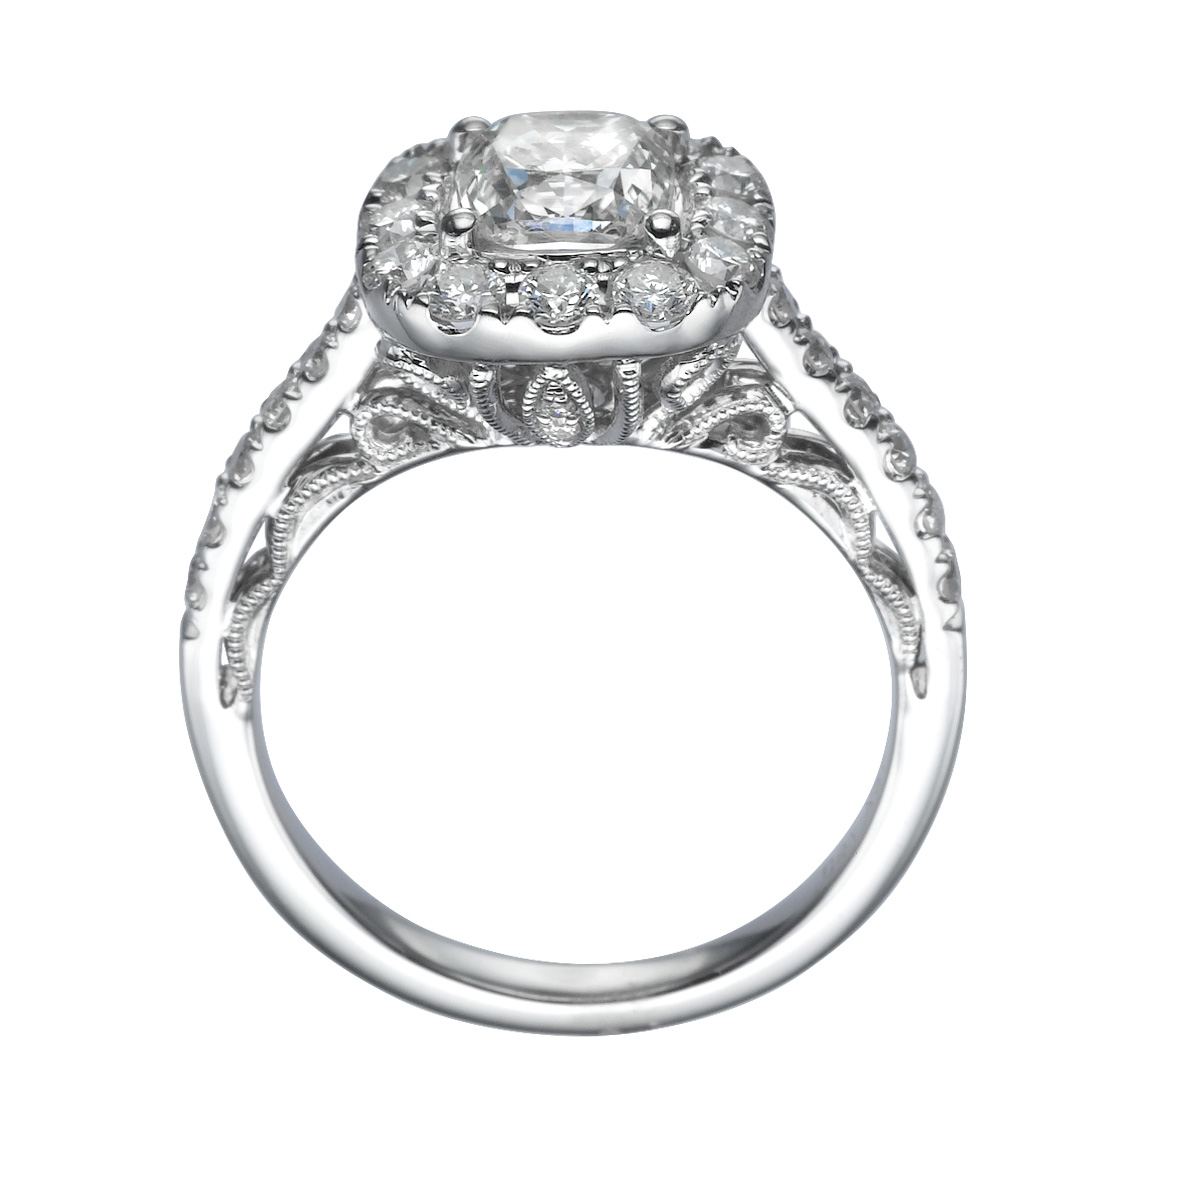 Halo Anniversary Bands: CERTIFIED FILIGREED 2 CT VVS ANNIVERSARY DIAMOND HALO RING